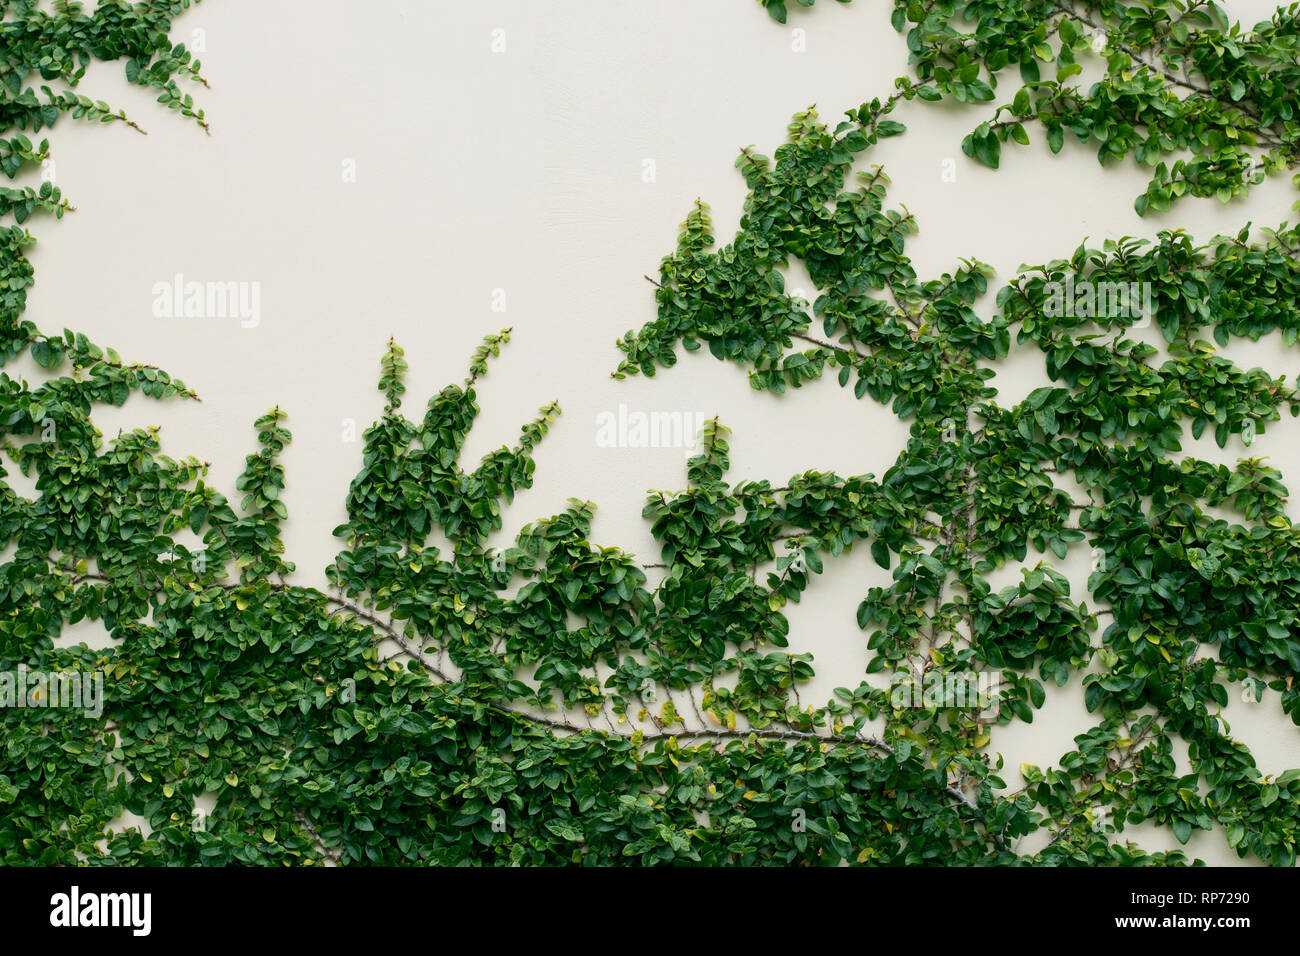 Climbing Plants Growing Up Wall High Resolution Stock Photography And Images Alamy